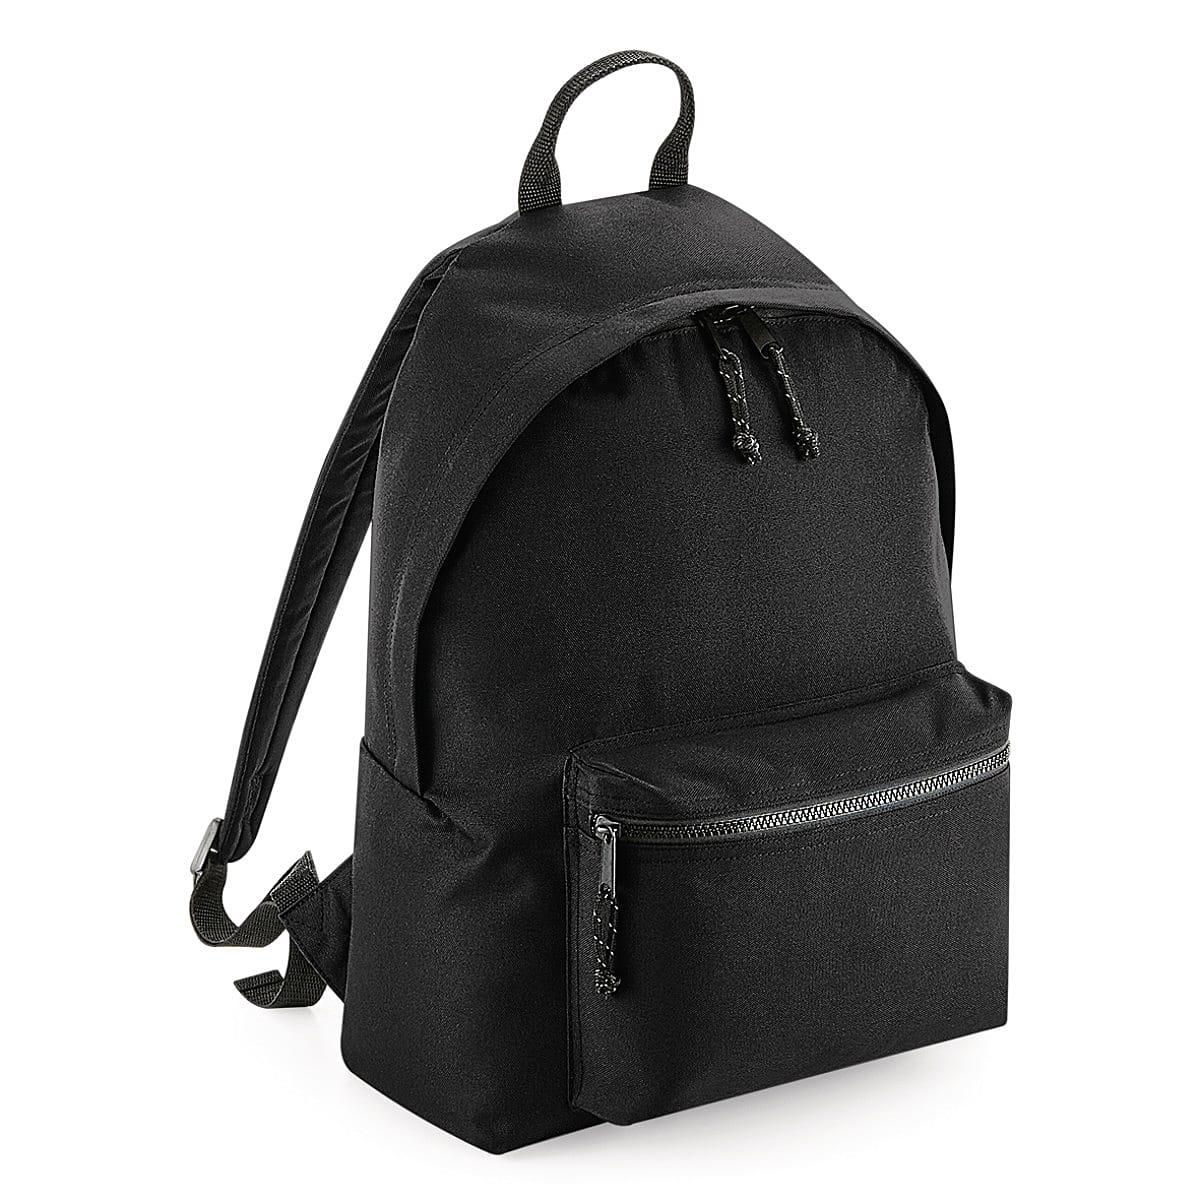 Bagbase Recycled Backpack in Black (Product Code: BG285)